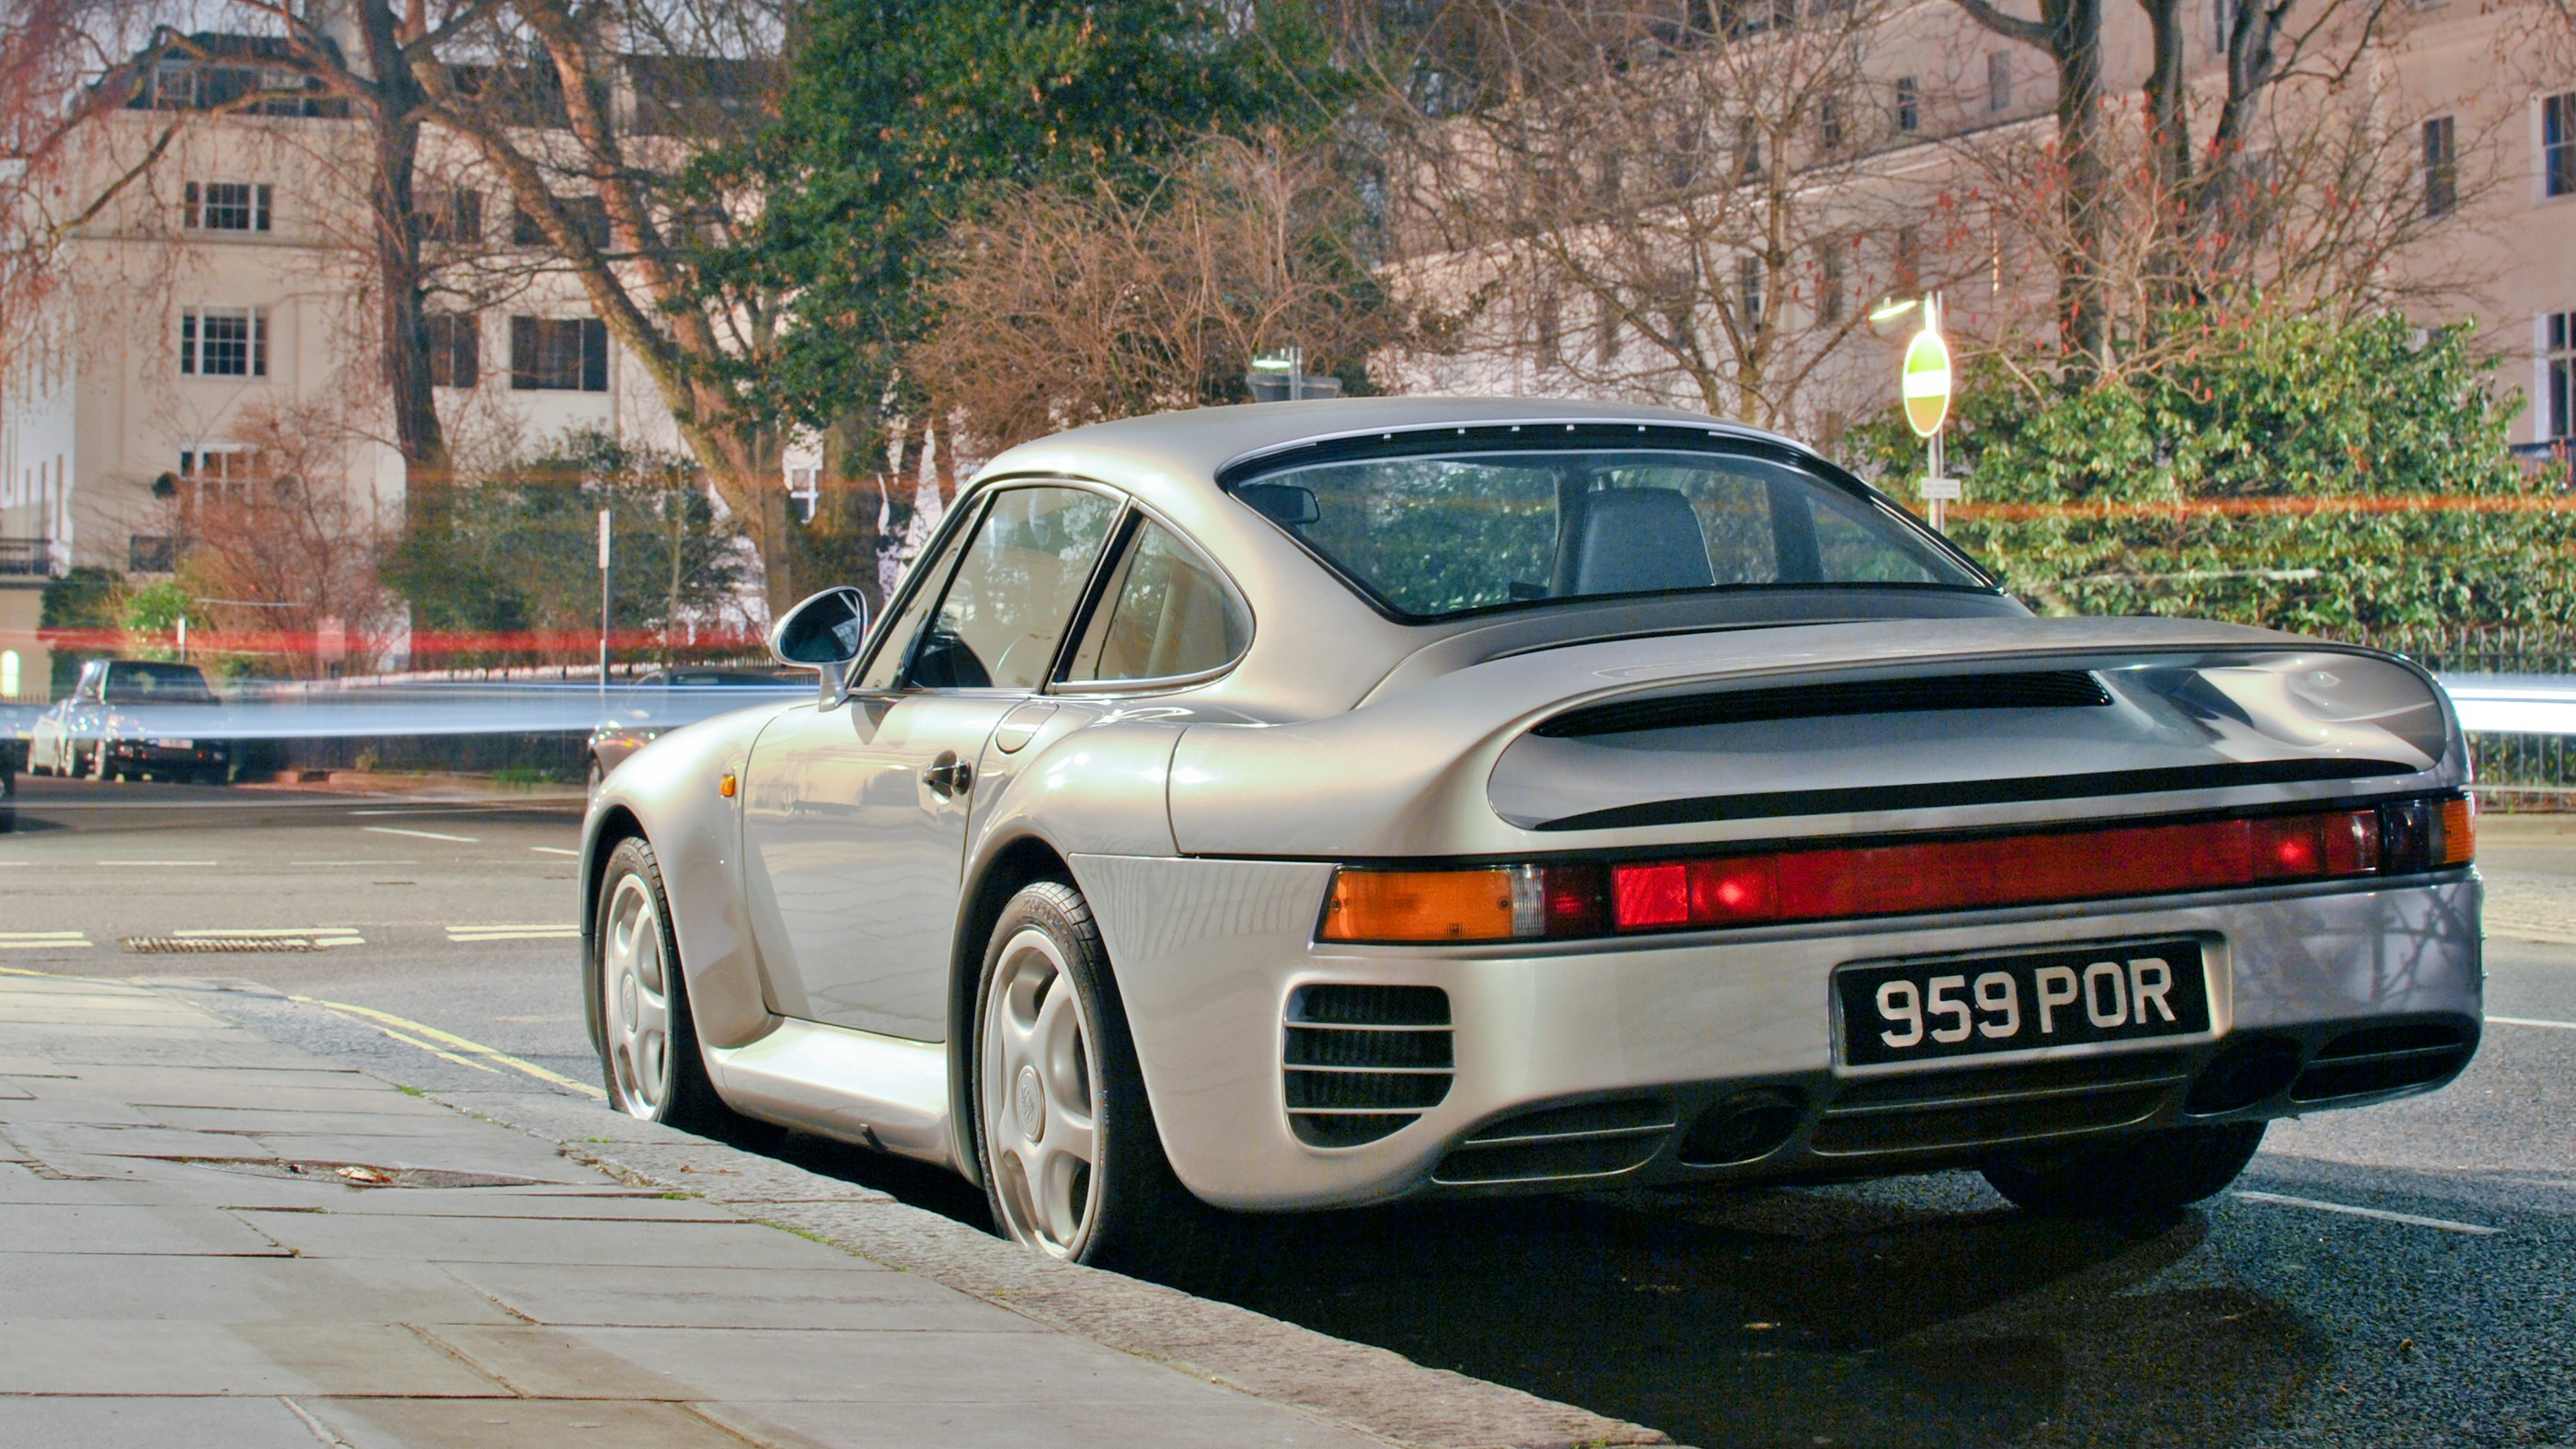 Porsche 959 14 Record-Setting Supercars That Made an Impression